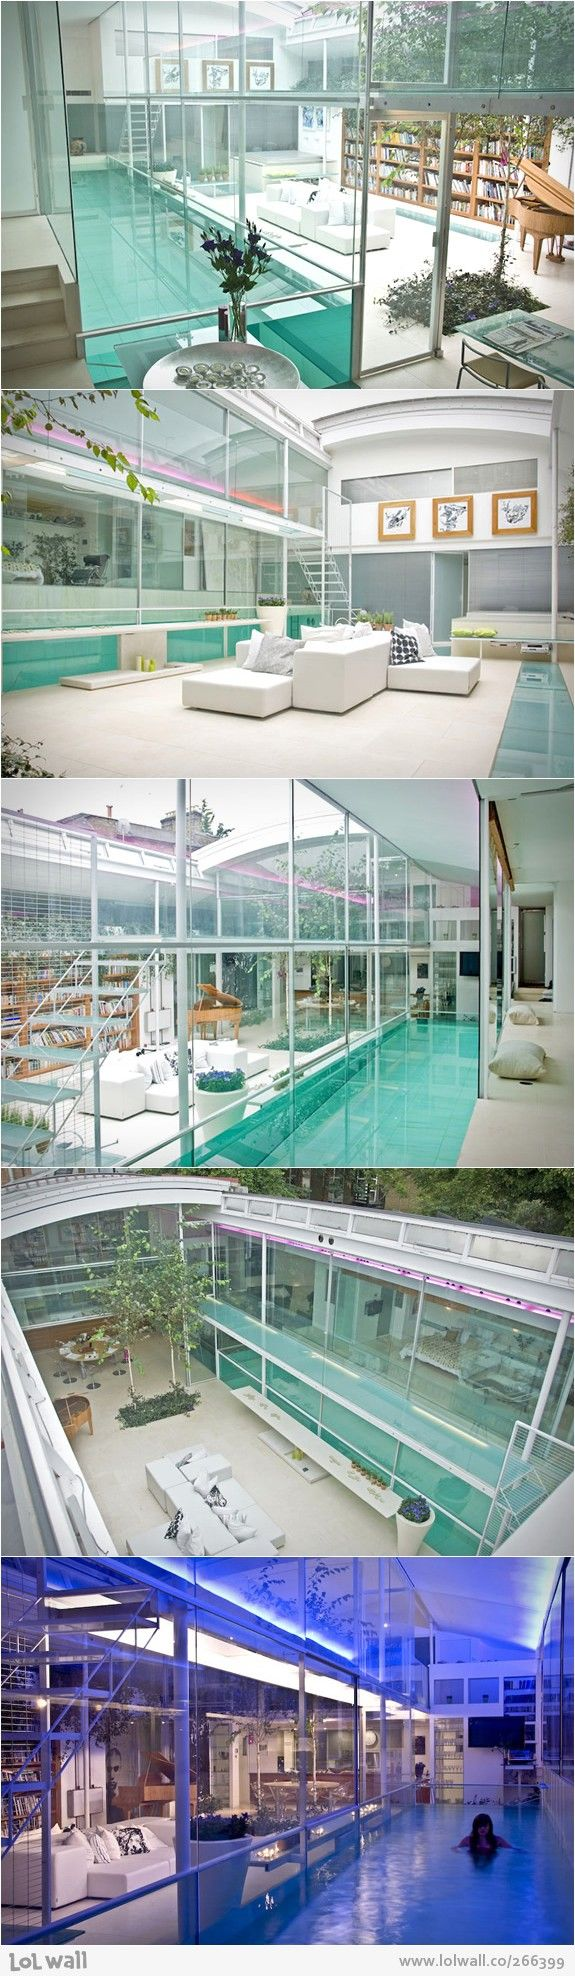 Best 25 inside mansions ideas on pinterest big houses for Amazing houses inside and out